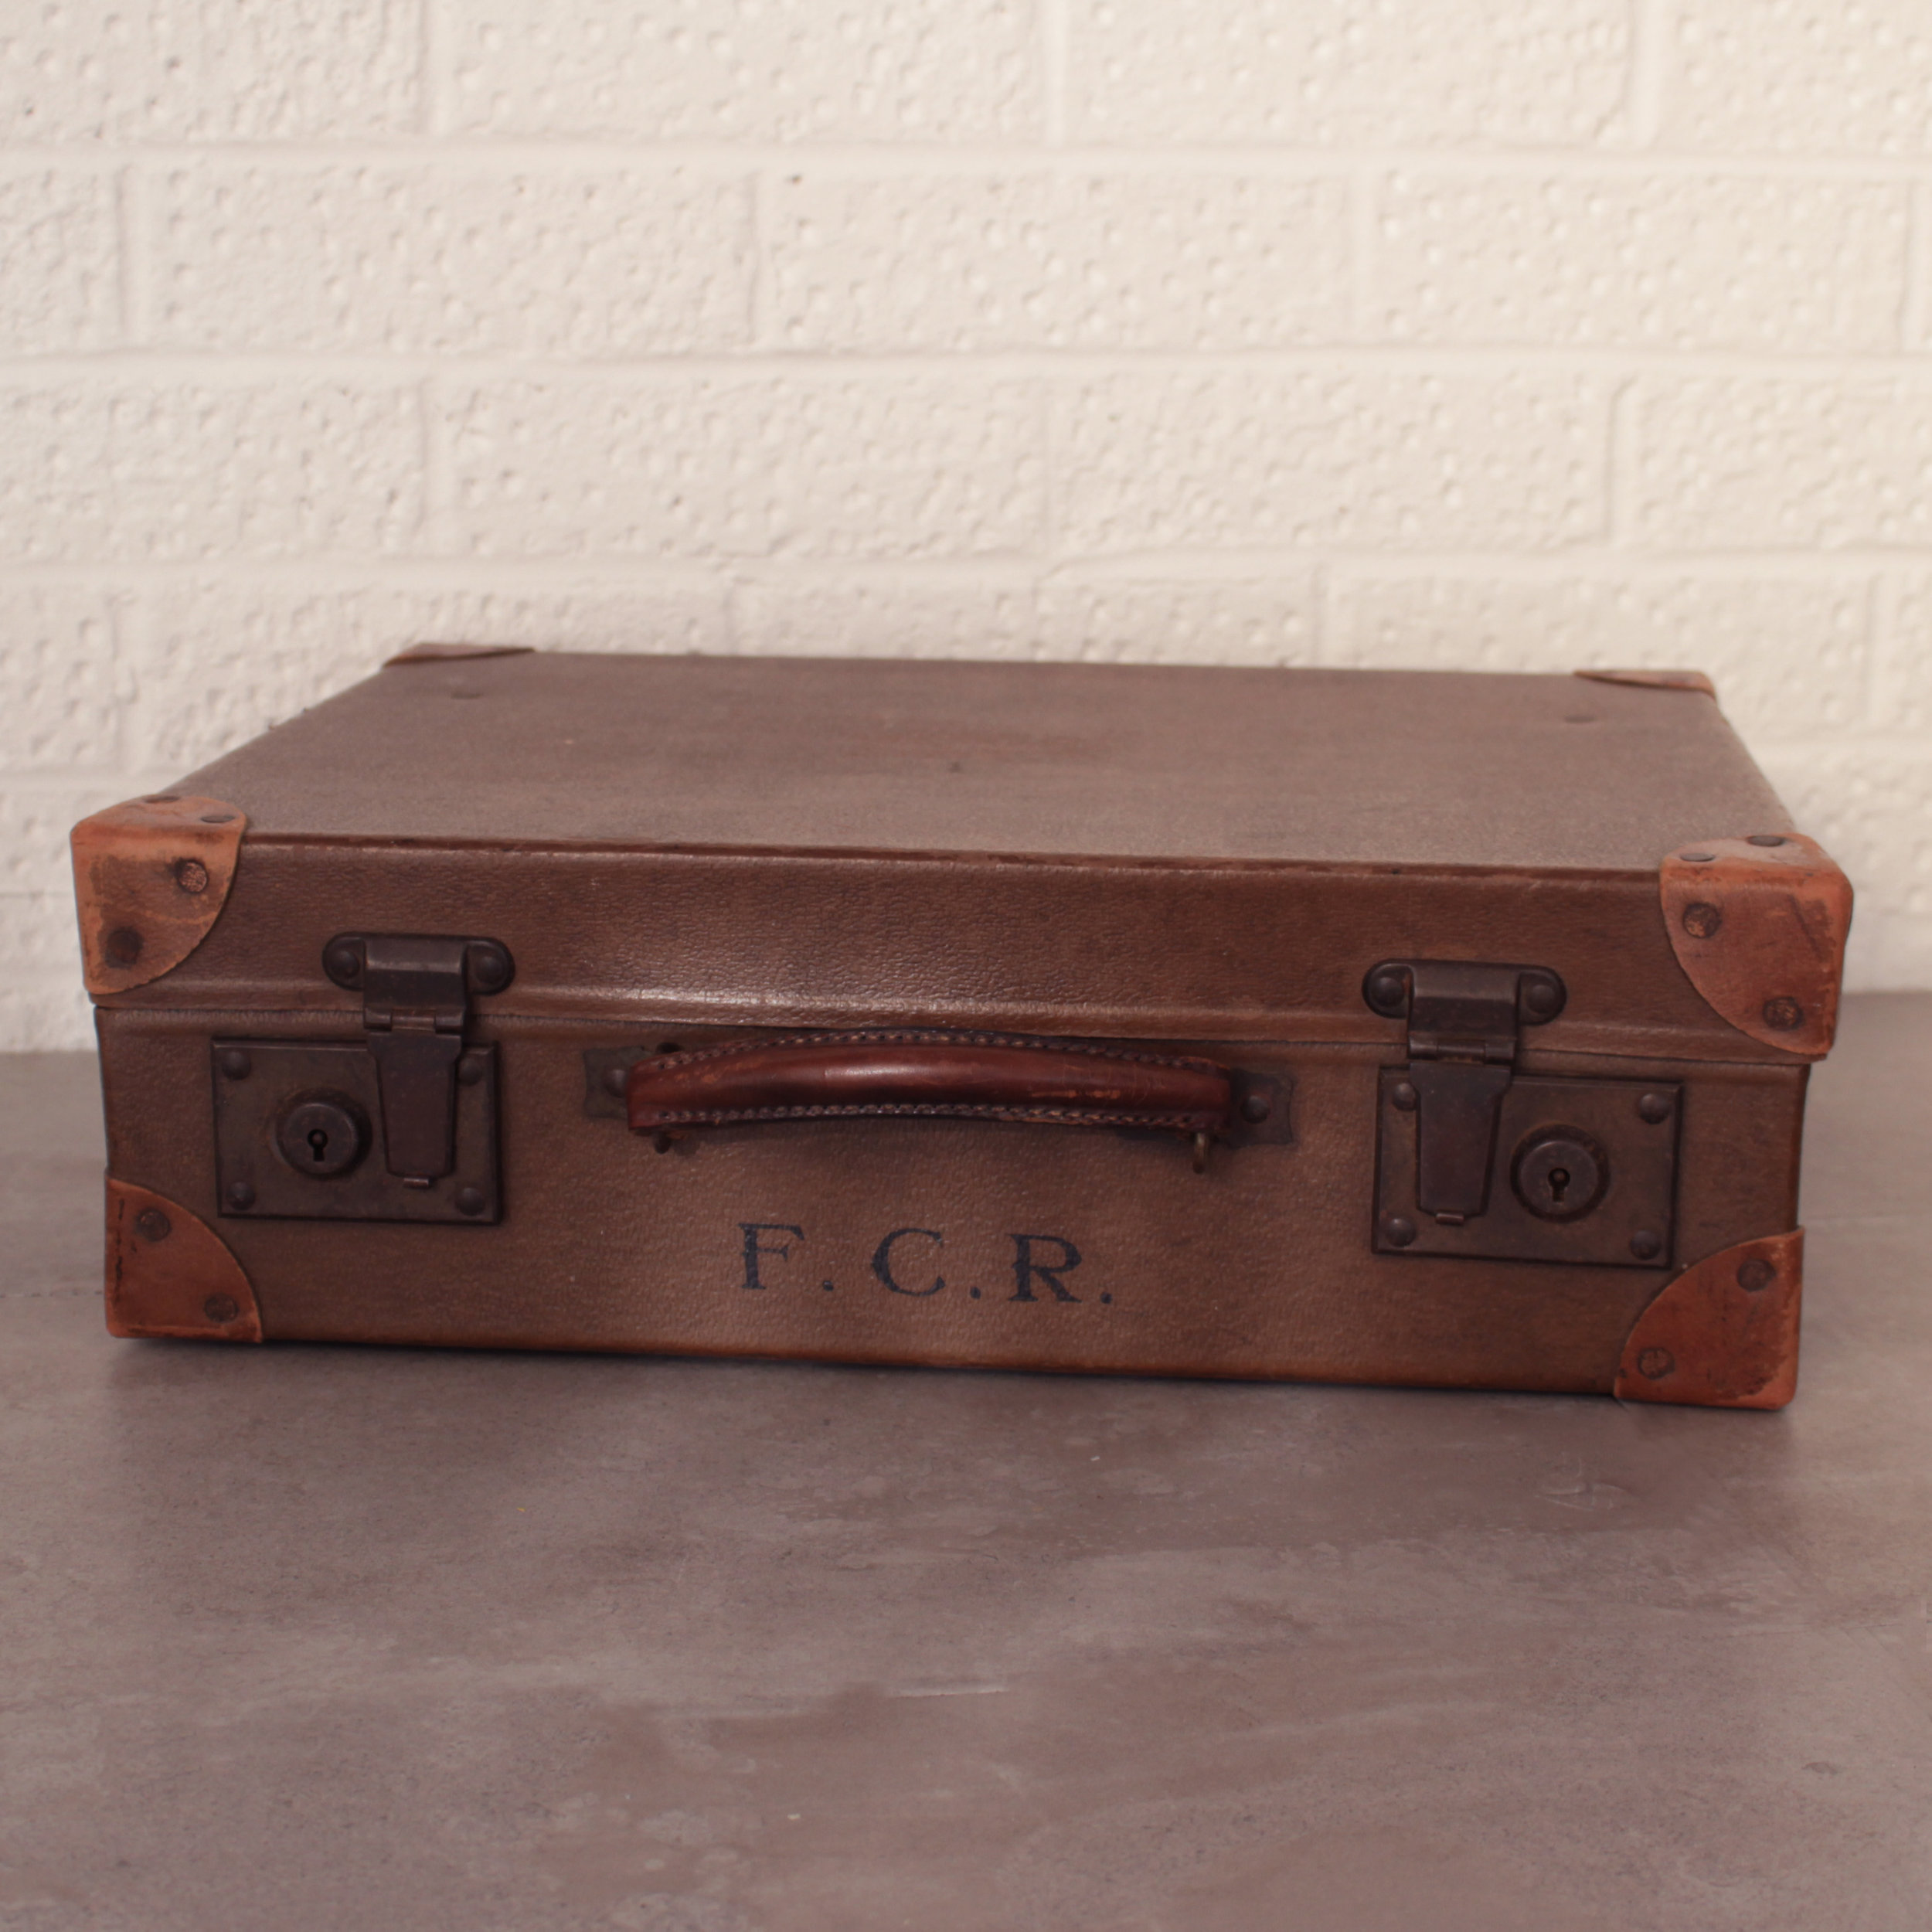 SMALL VINTAGE SUITCASE £10